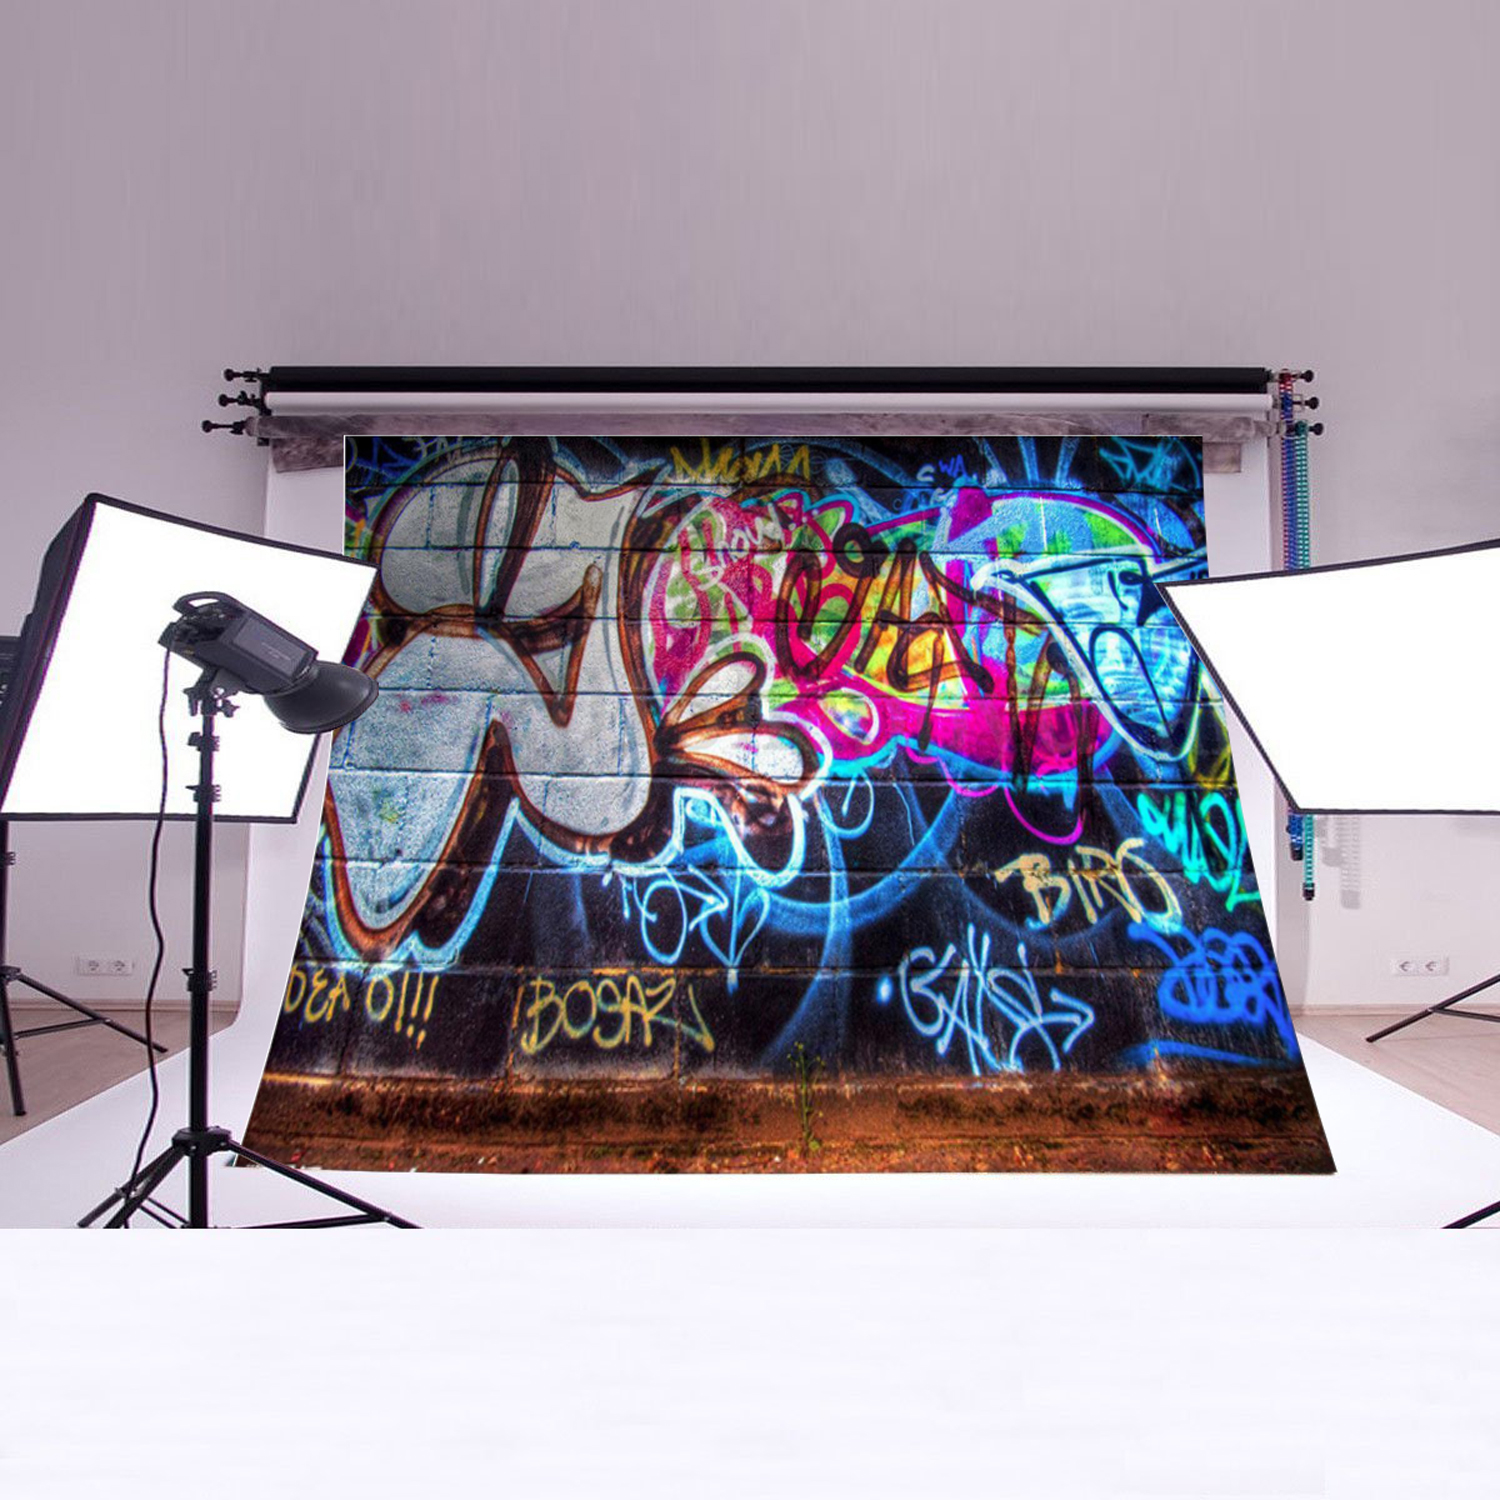 NK HOME Studio Photo Video Photography Backdrops 5x3ft Bright Graffiti Scenic Printed Vinyl Fabric Background Screen Props